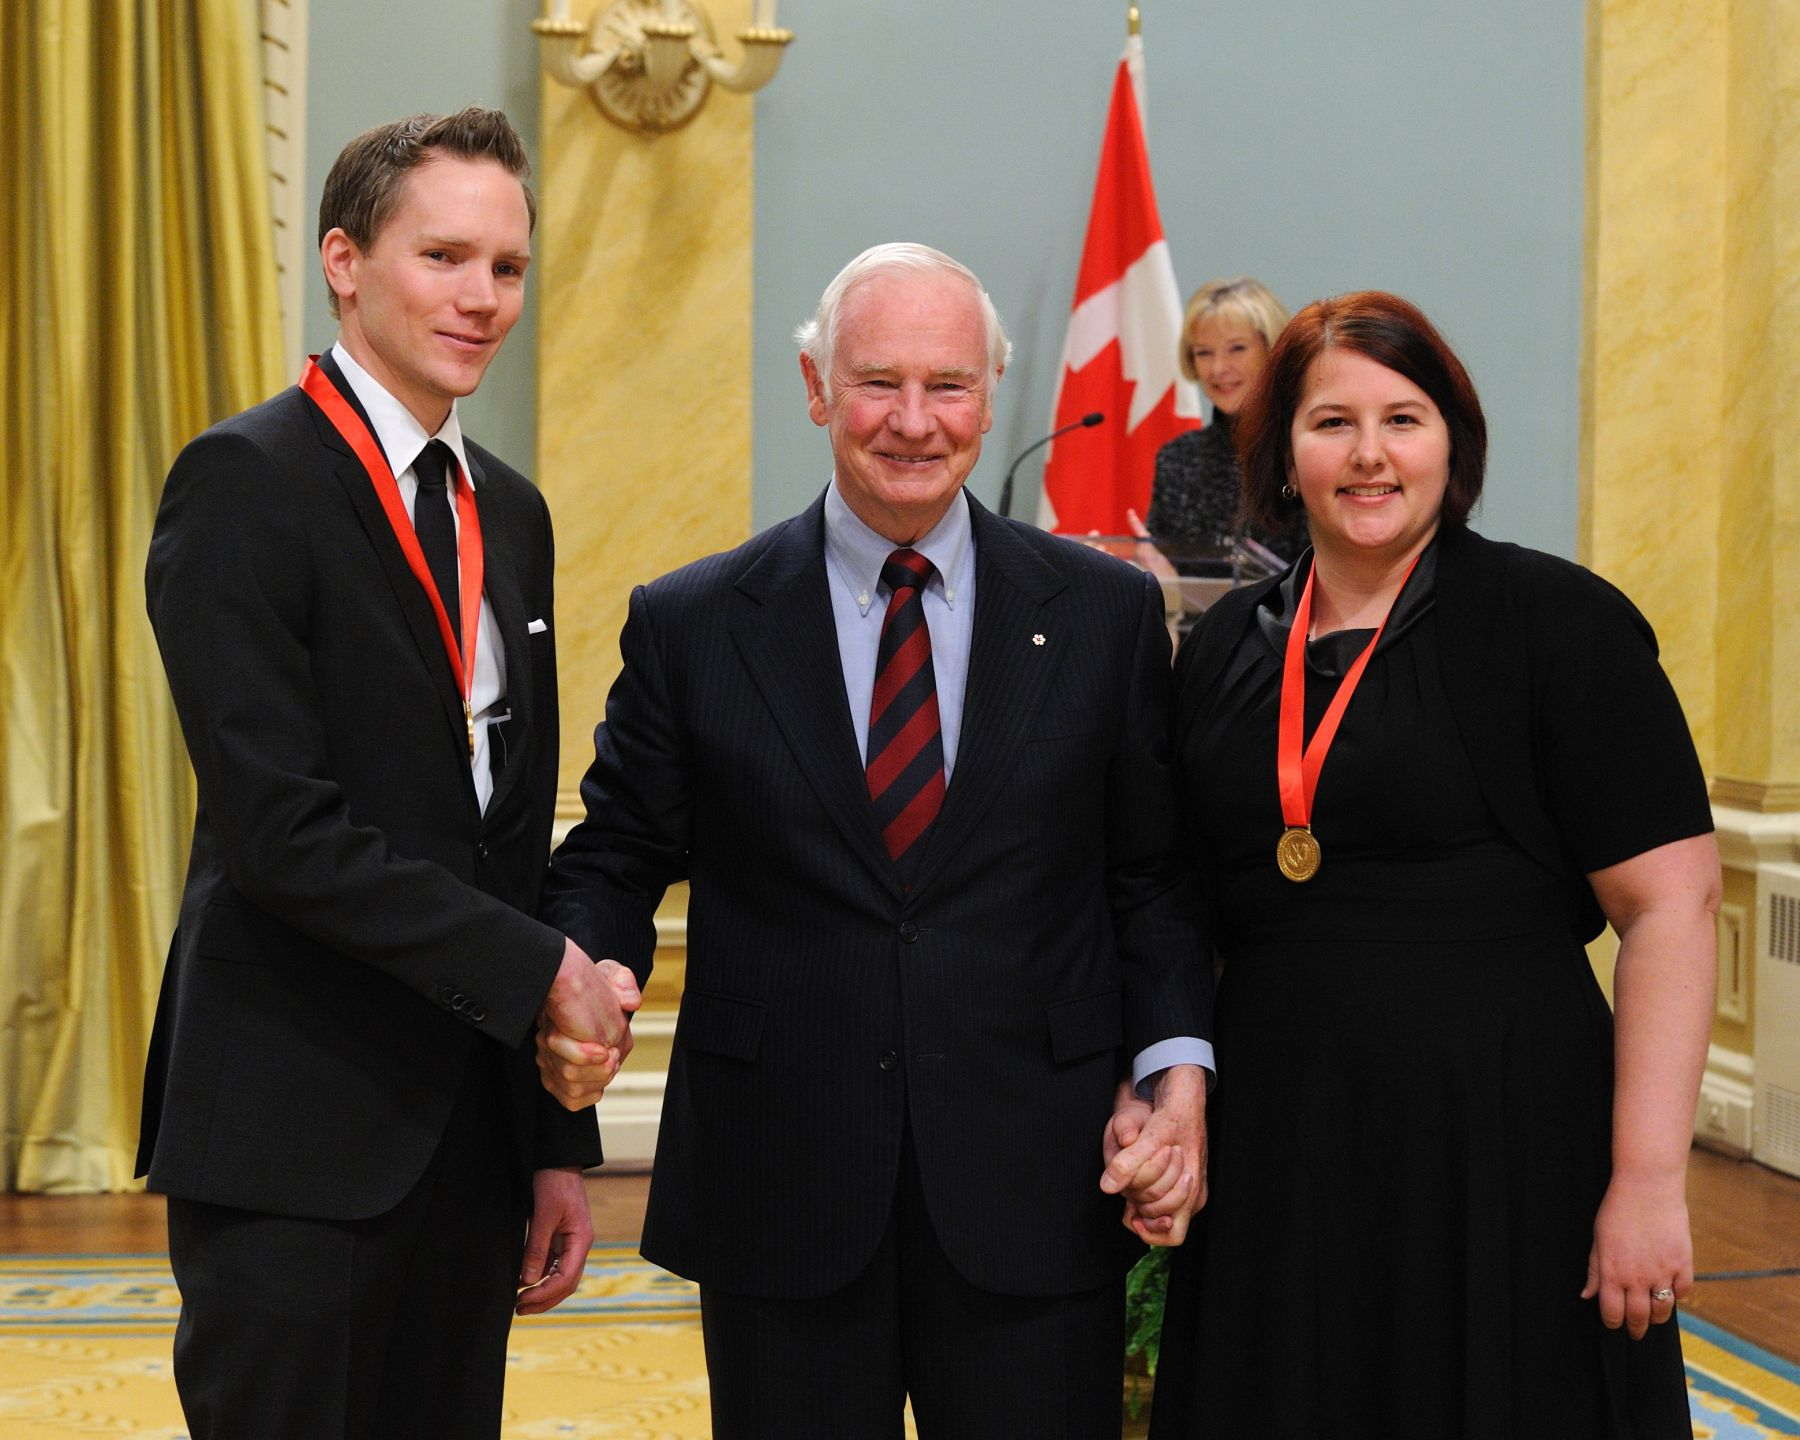 His Excellency awarded the Governor General's History Awards for Excellence in Teaching to Chad Howie and Sarah Beech, from Valley Creek Middle School, in Calgary, Alberta, for their grade 7 class Seven Years War project.